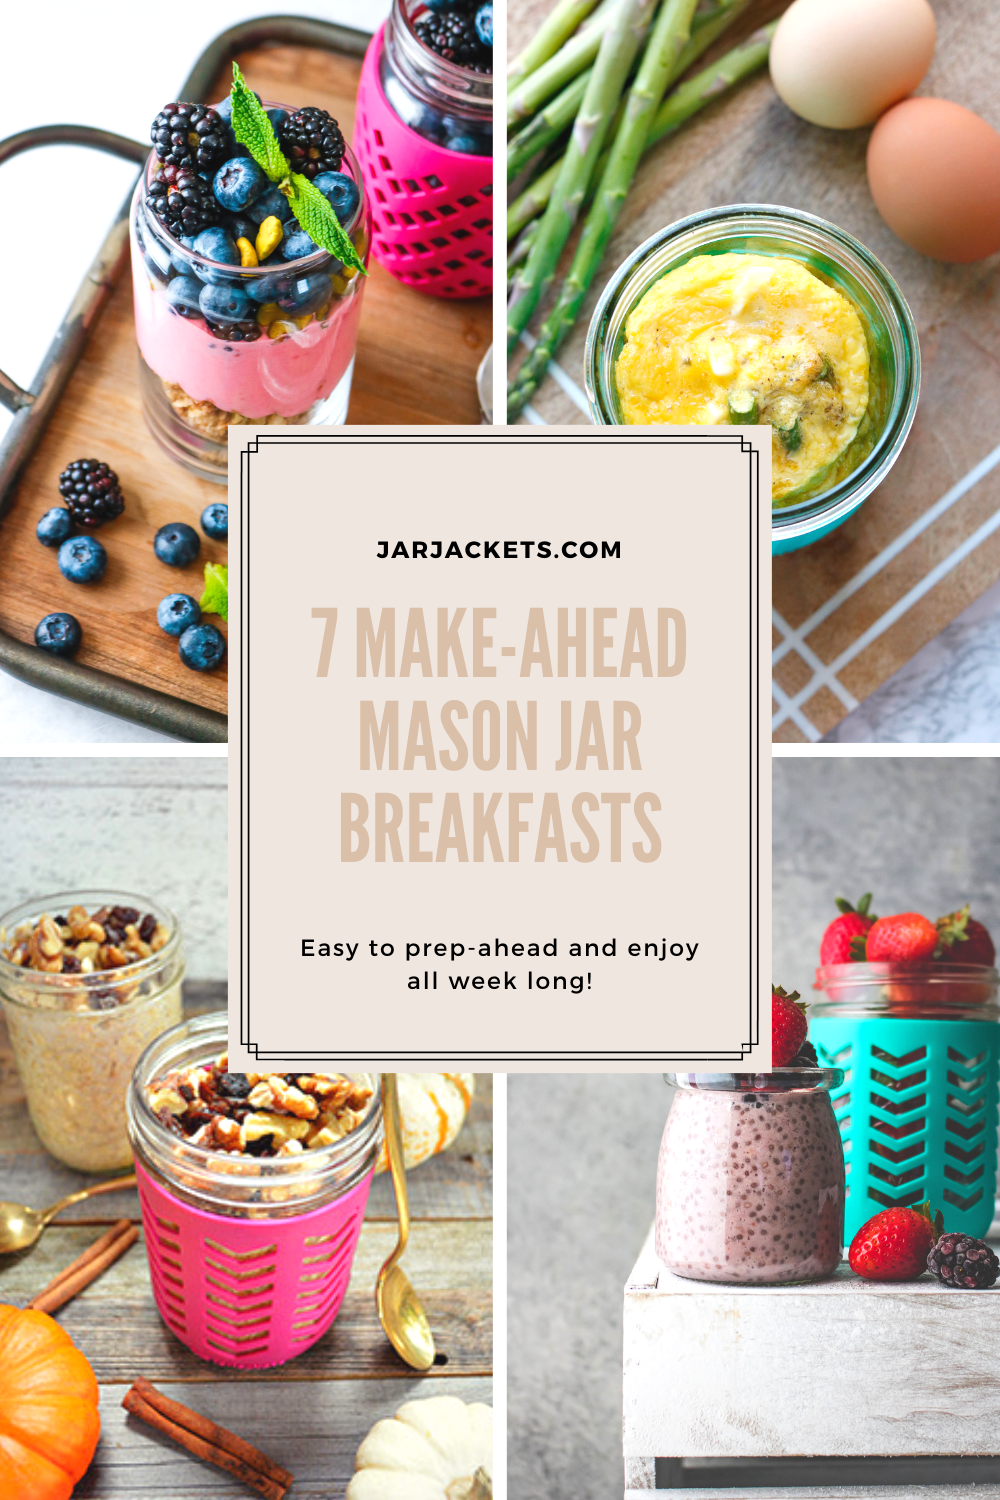 Make-Ahead Mason Jar Breakfasts